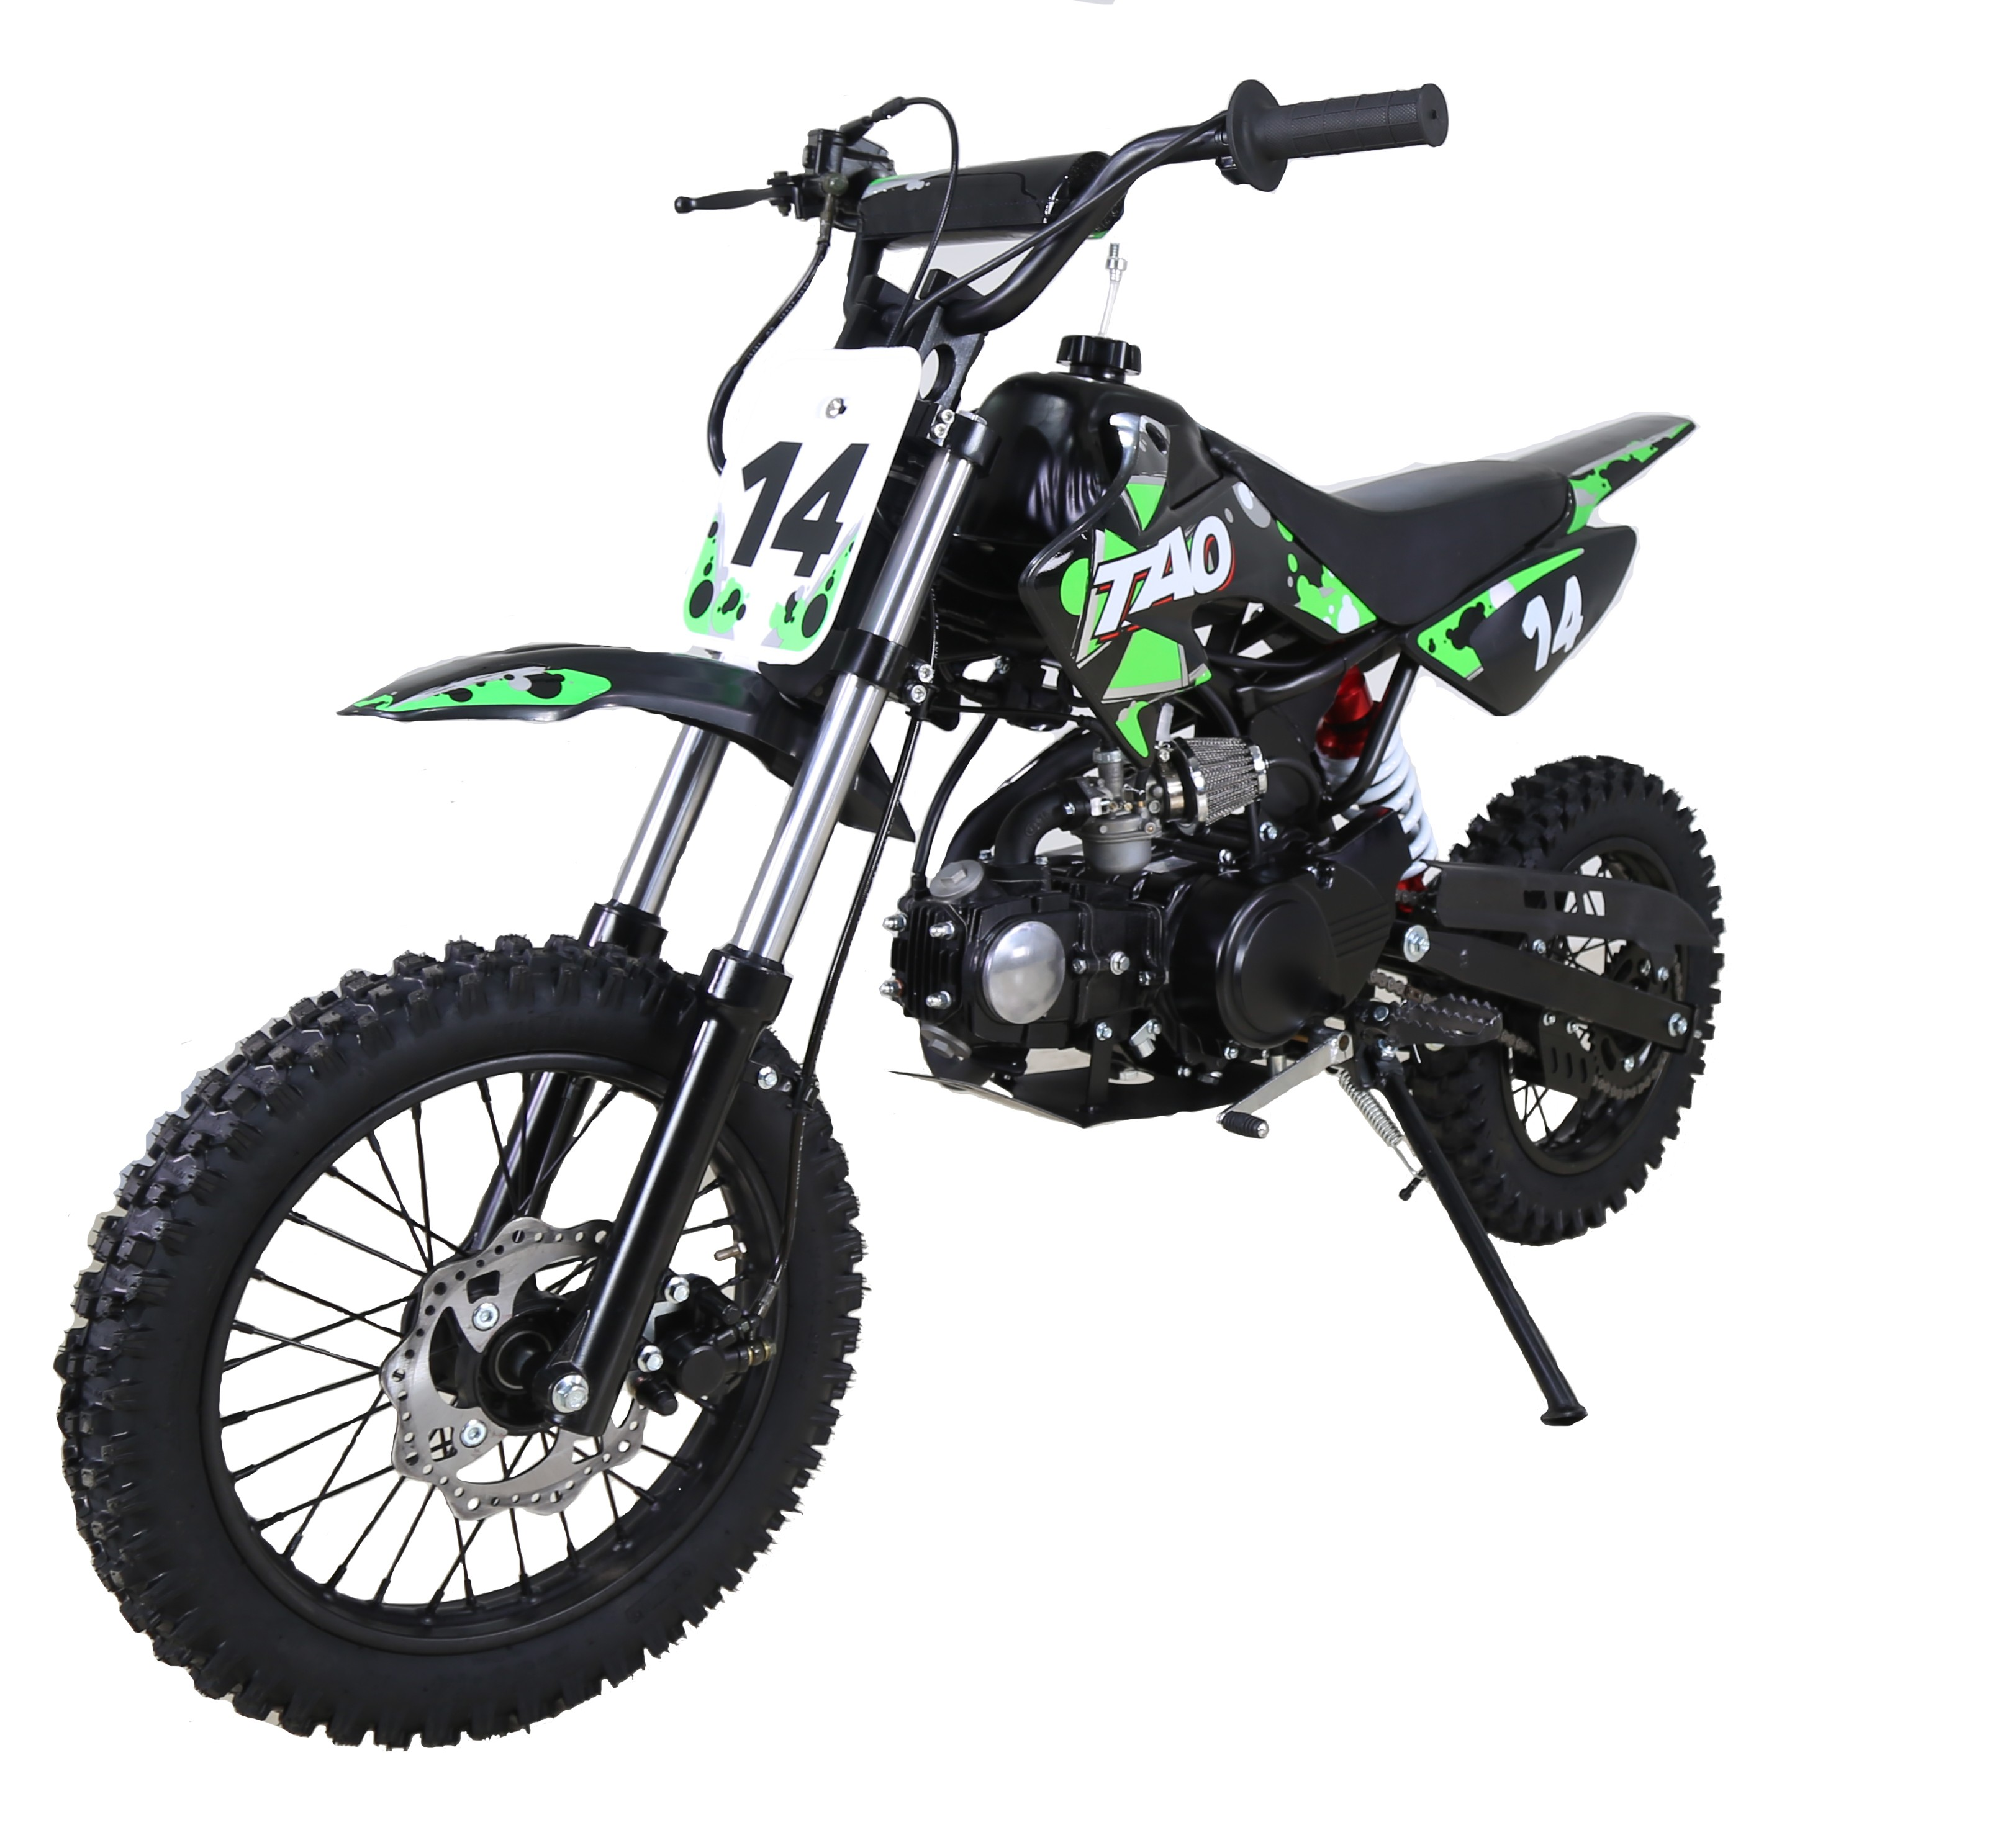 TaoTao 110cc DB-14 Semi-Automatic Pit Dirt Bike